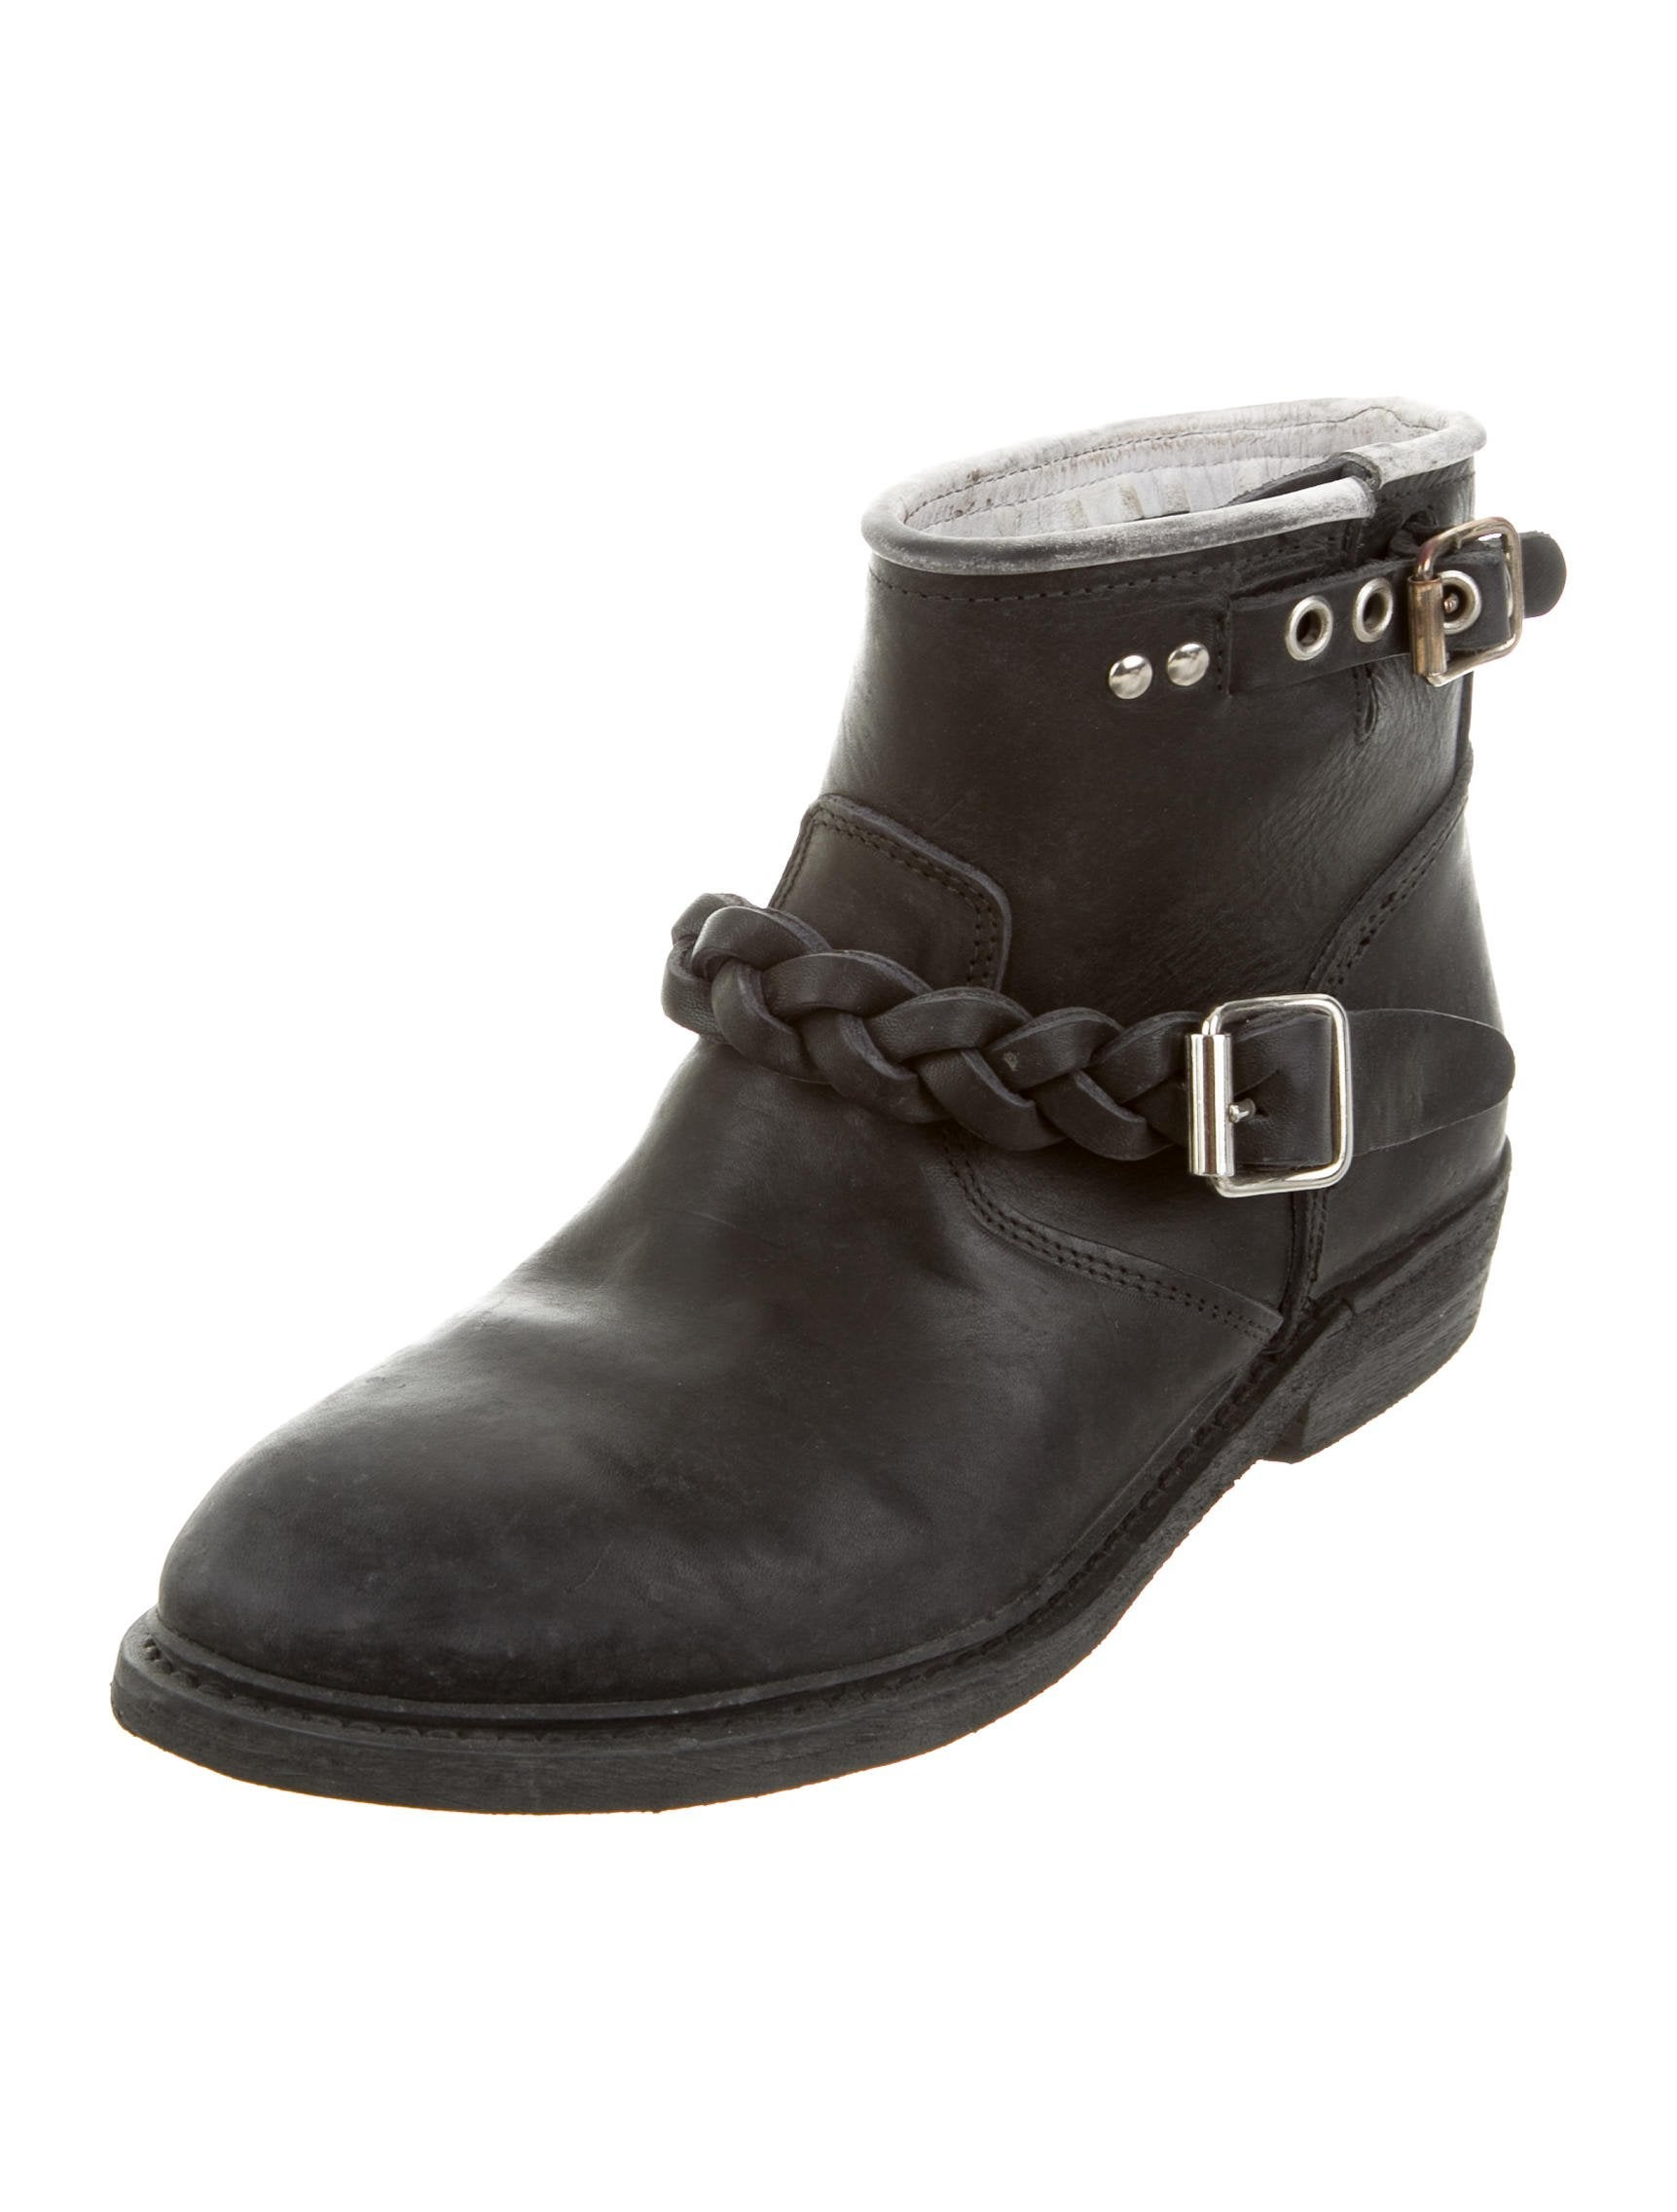 golden goose distressed biker boots w tags shoes wg524182 the realreal. Black Bedroom Furniture Sets. Home Design Ideas